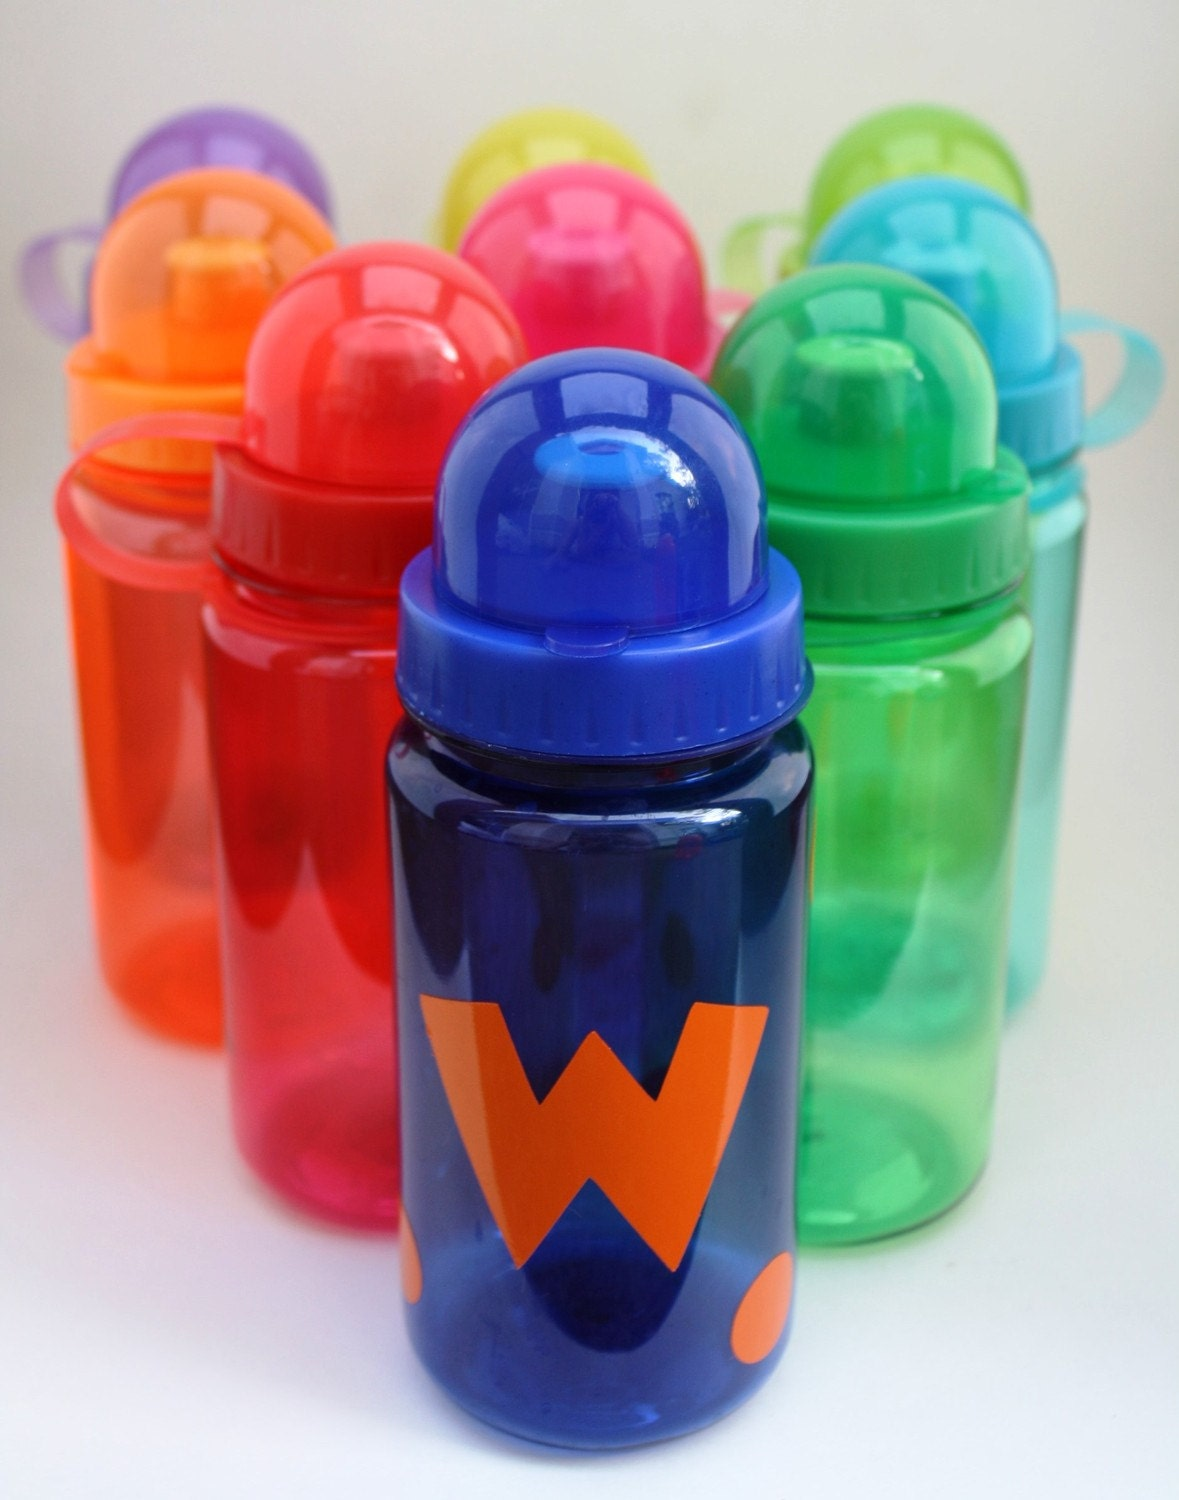 Personalized Child's Water Bottles - with polka dots